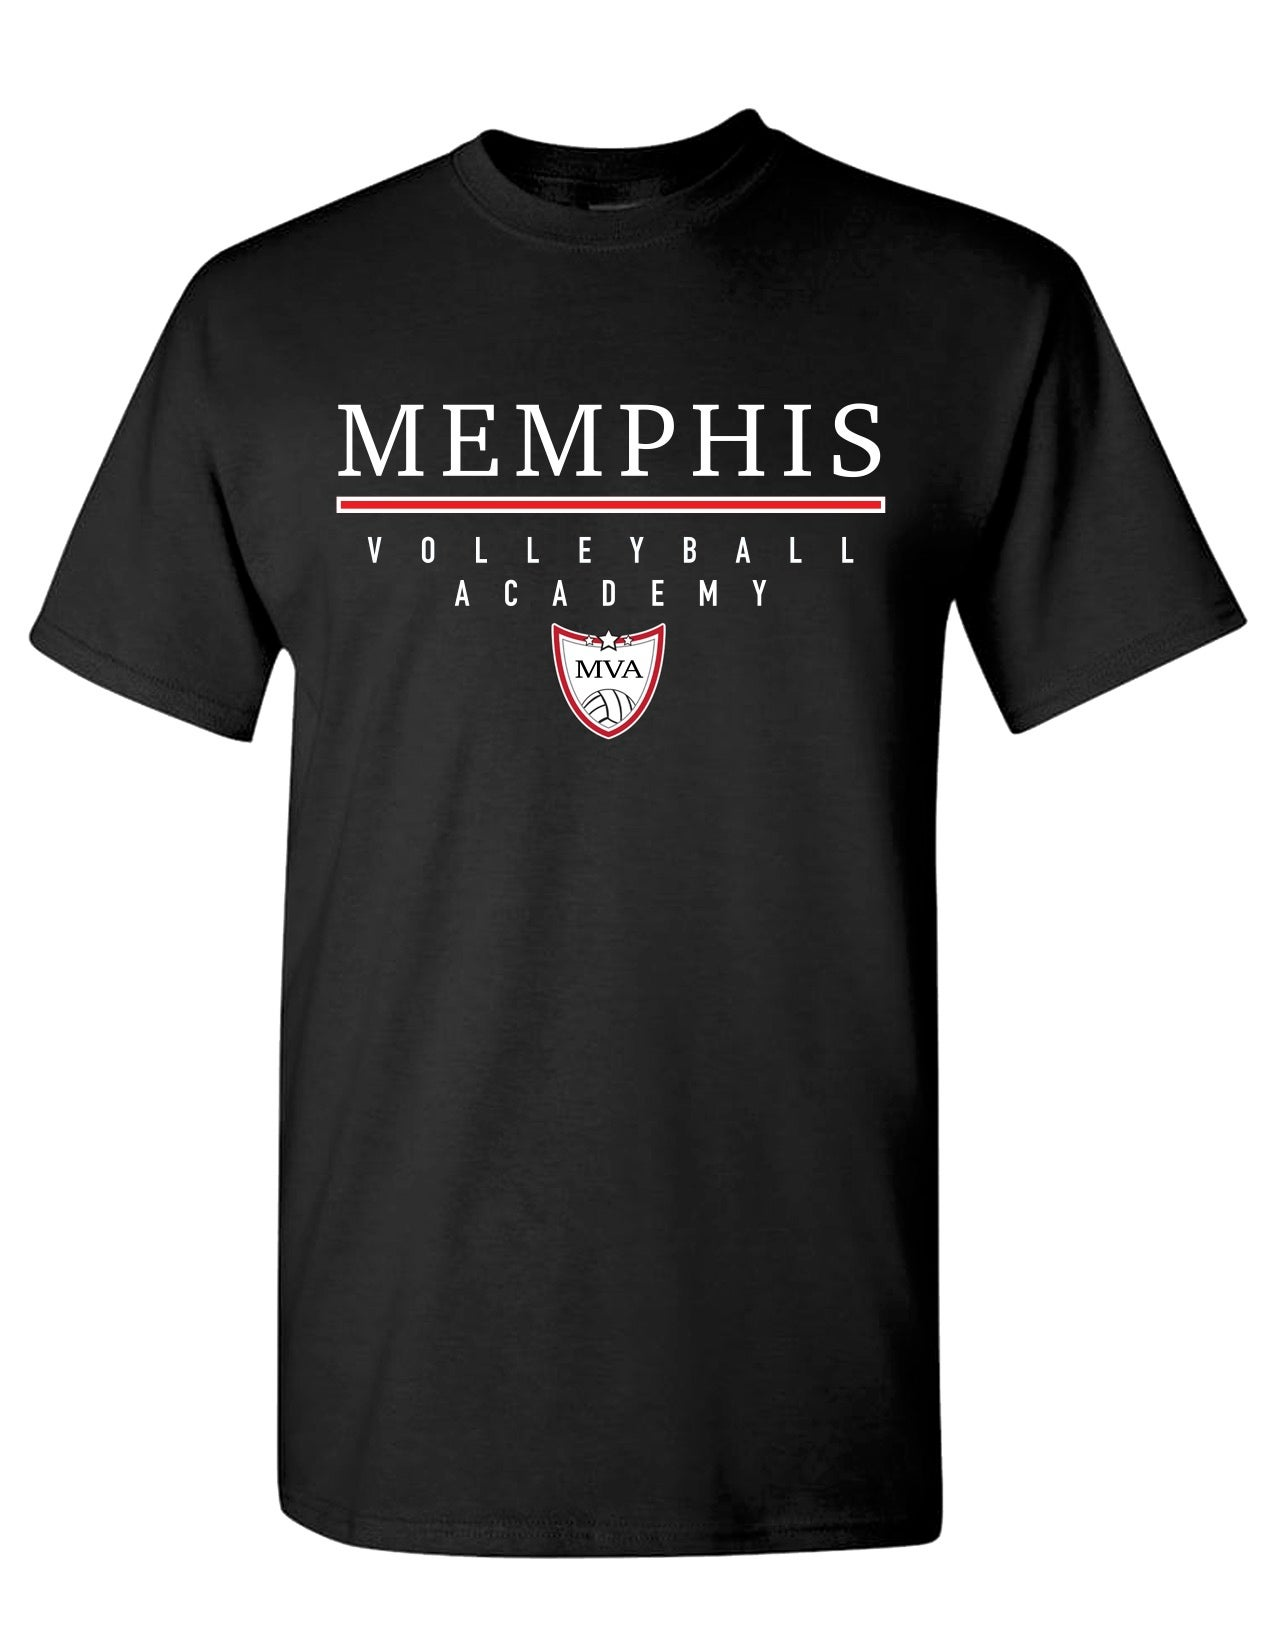 Image of Memphis Volleyball Academy Tshirt - (Multiple Color Options)